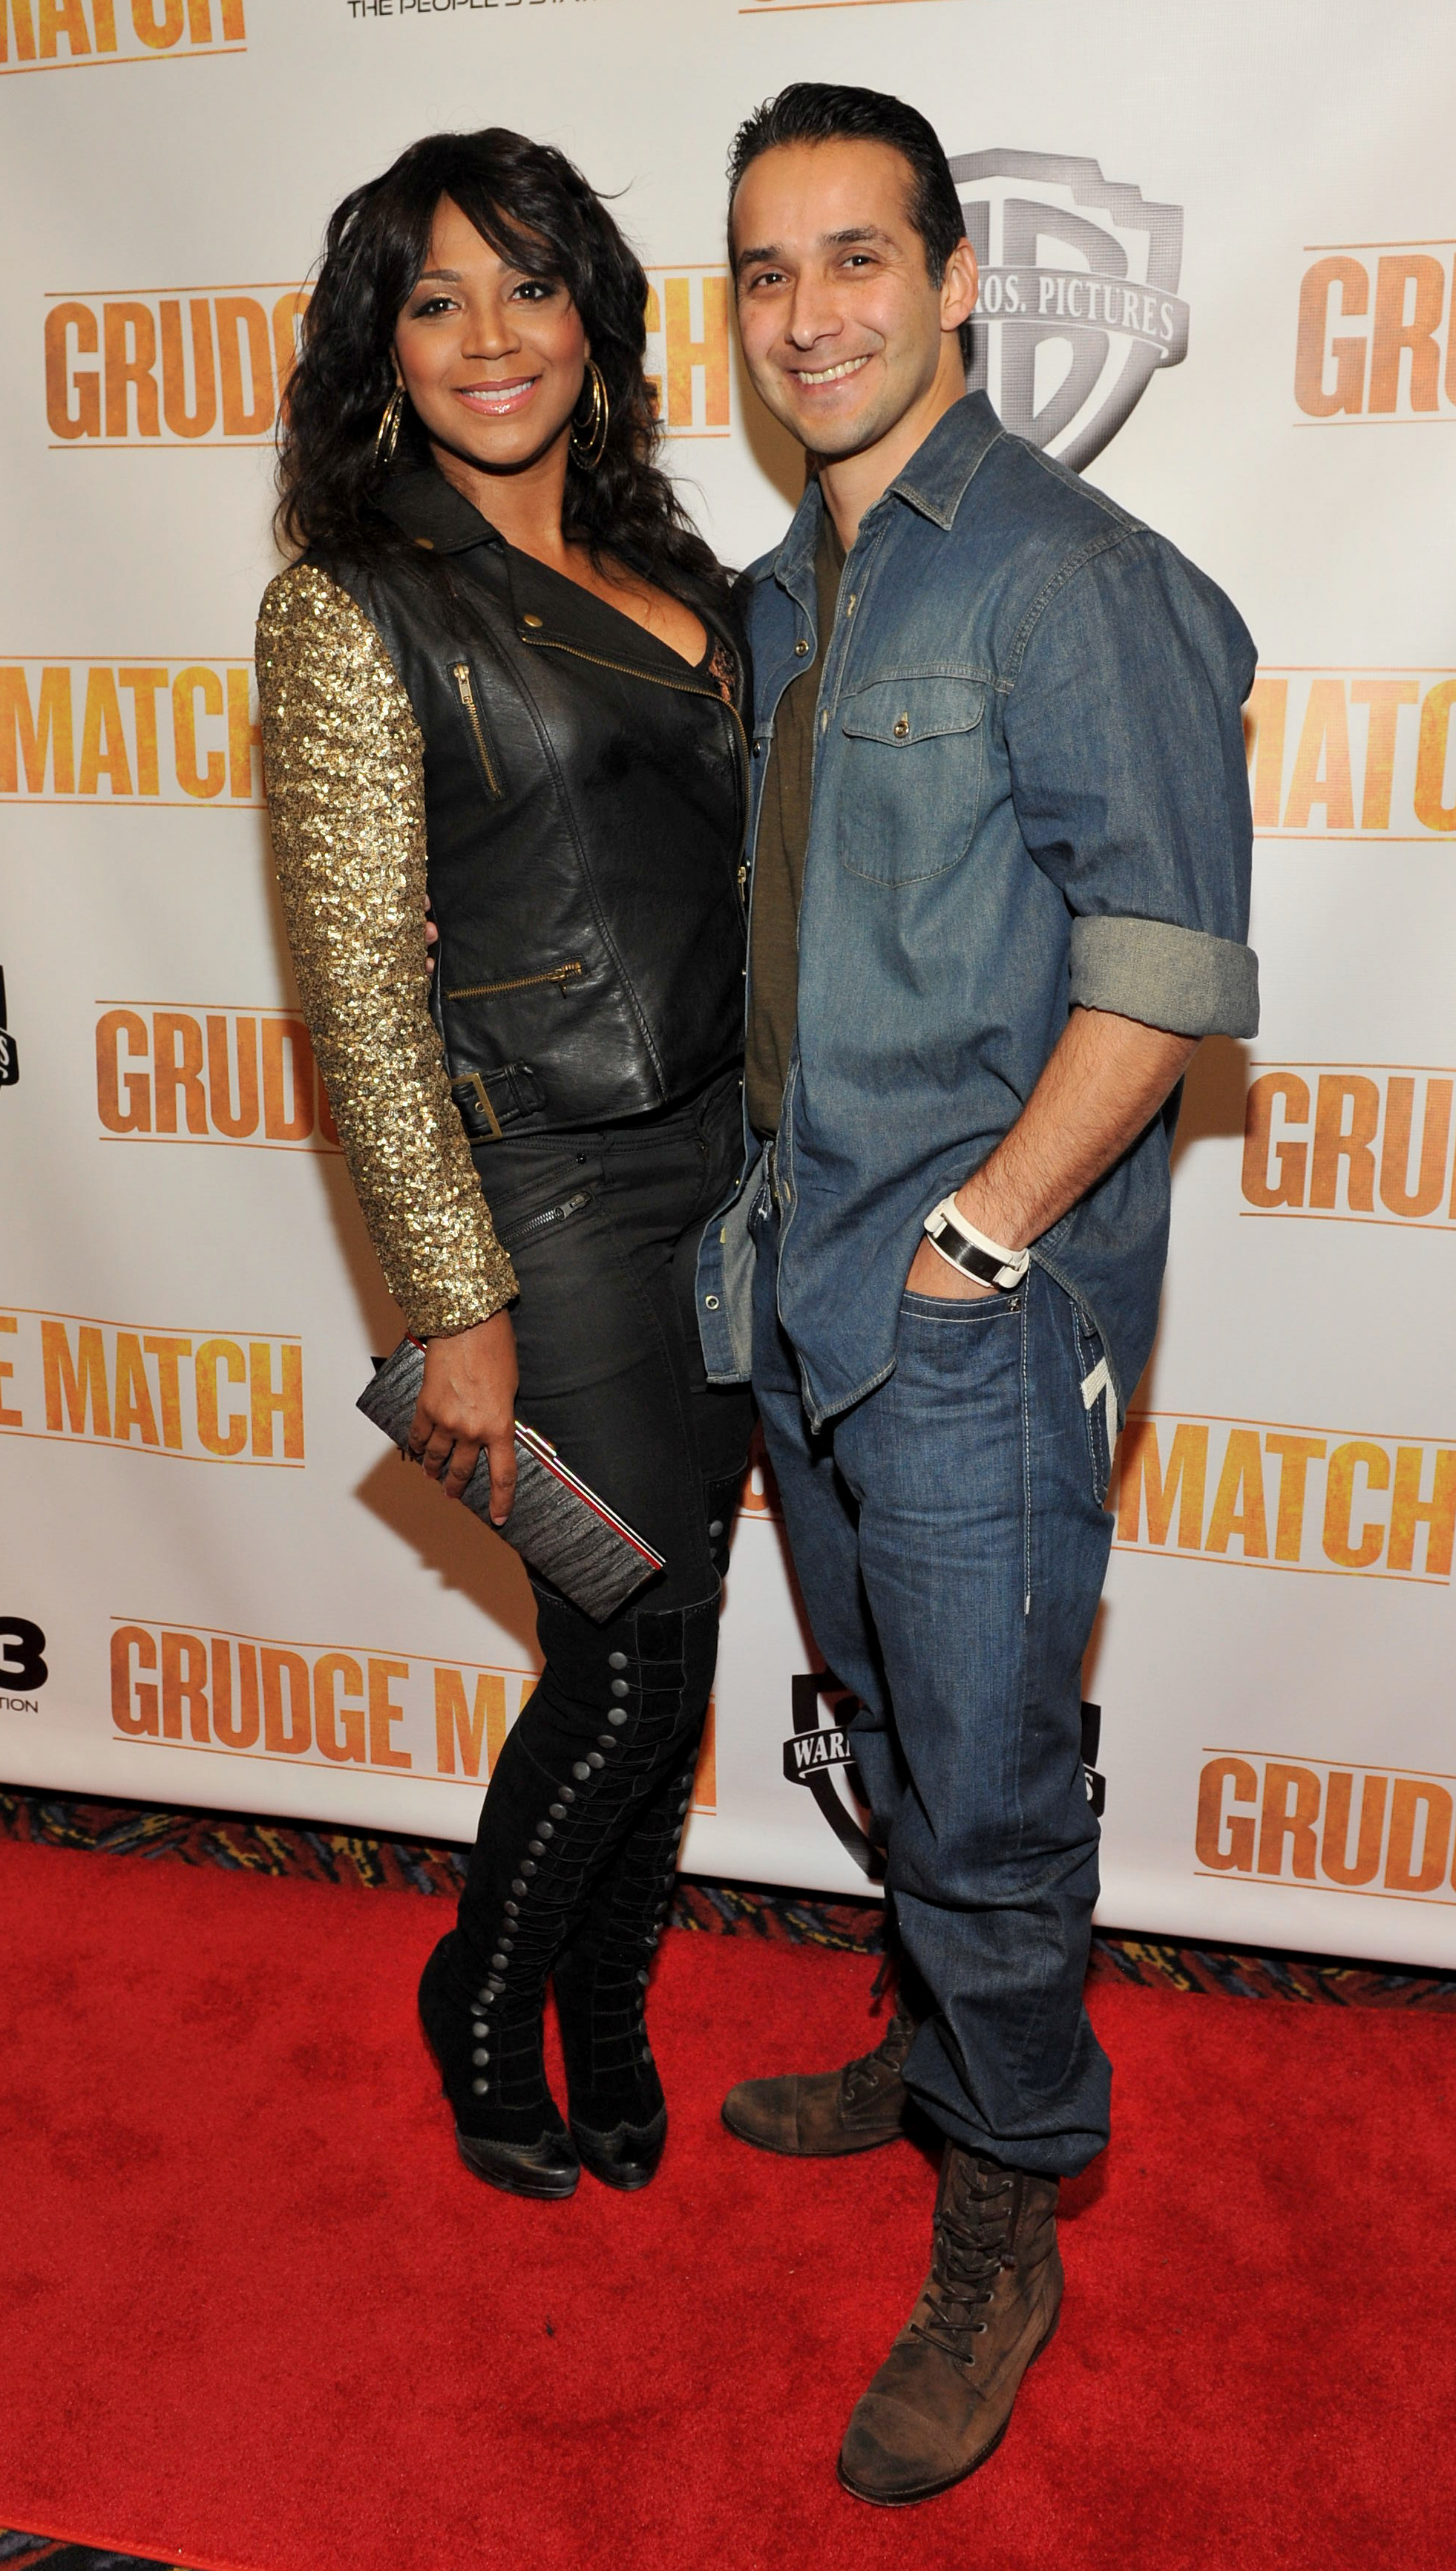 Trina Braxton's Husband Shares Braxton Family Secrets and His Privates Online